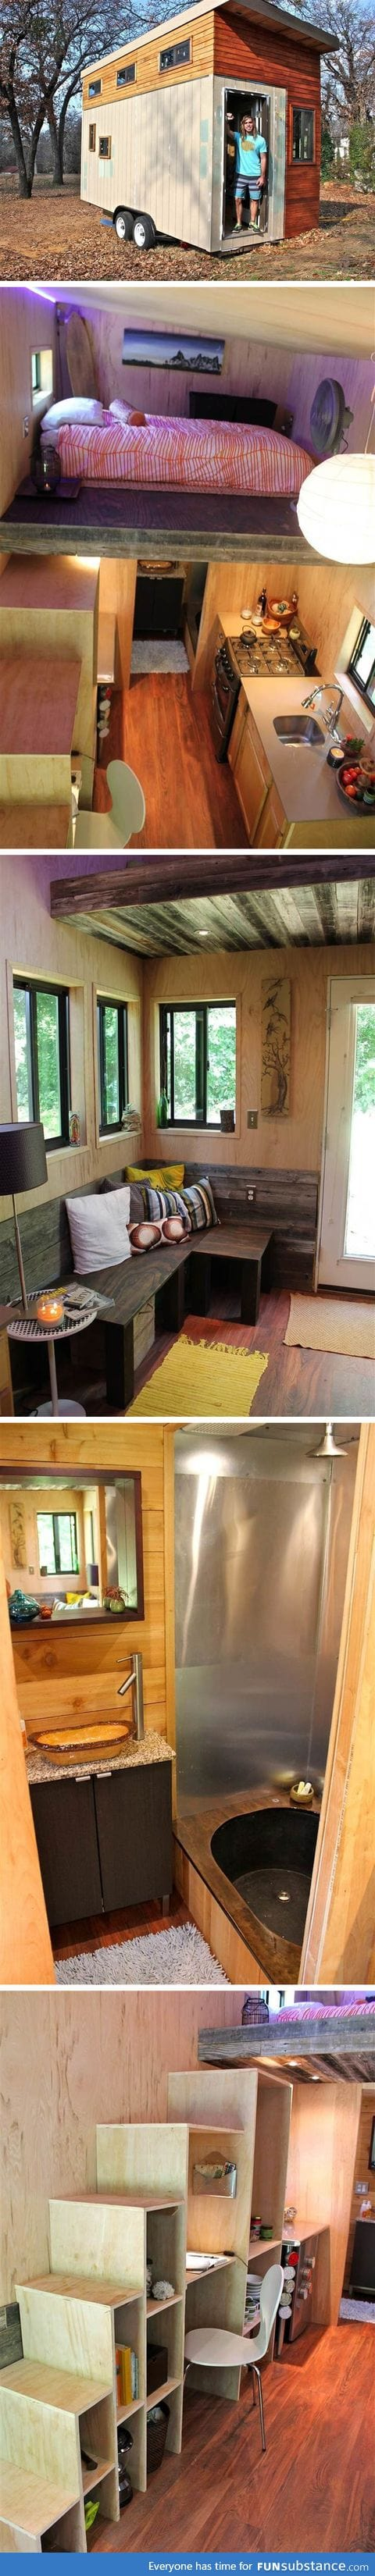 College student builds tiny home